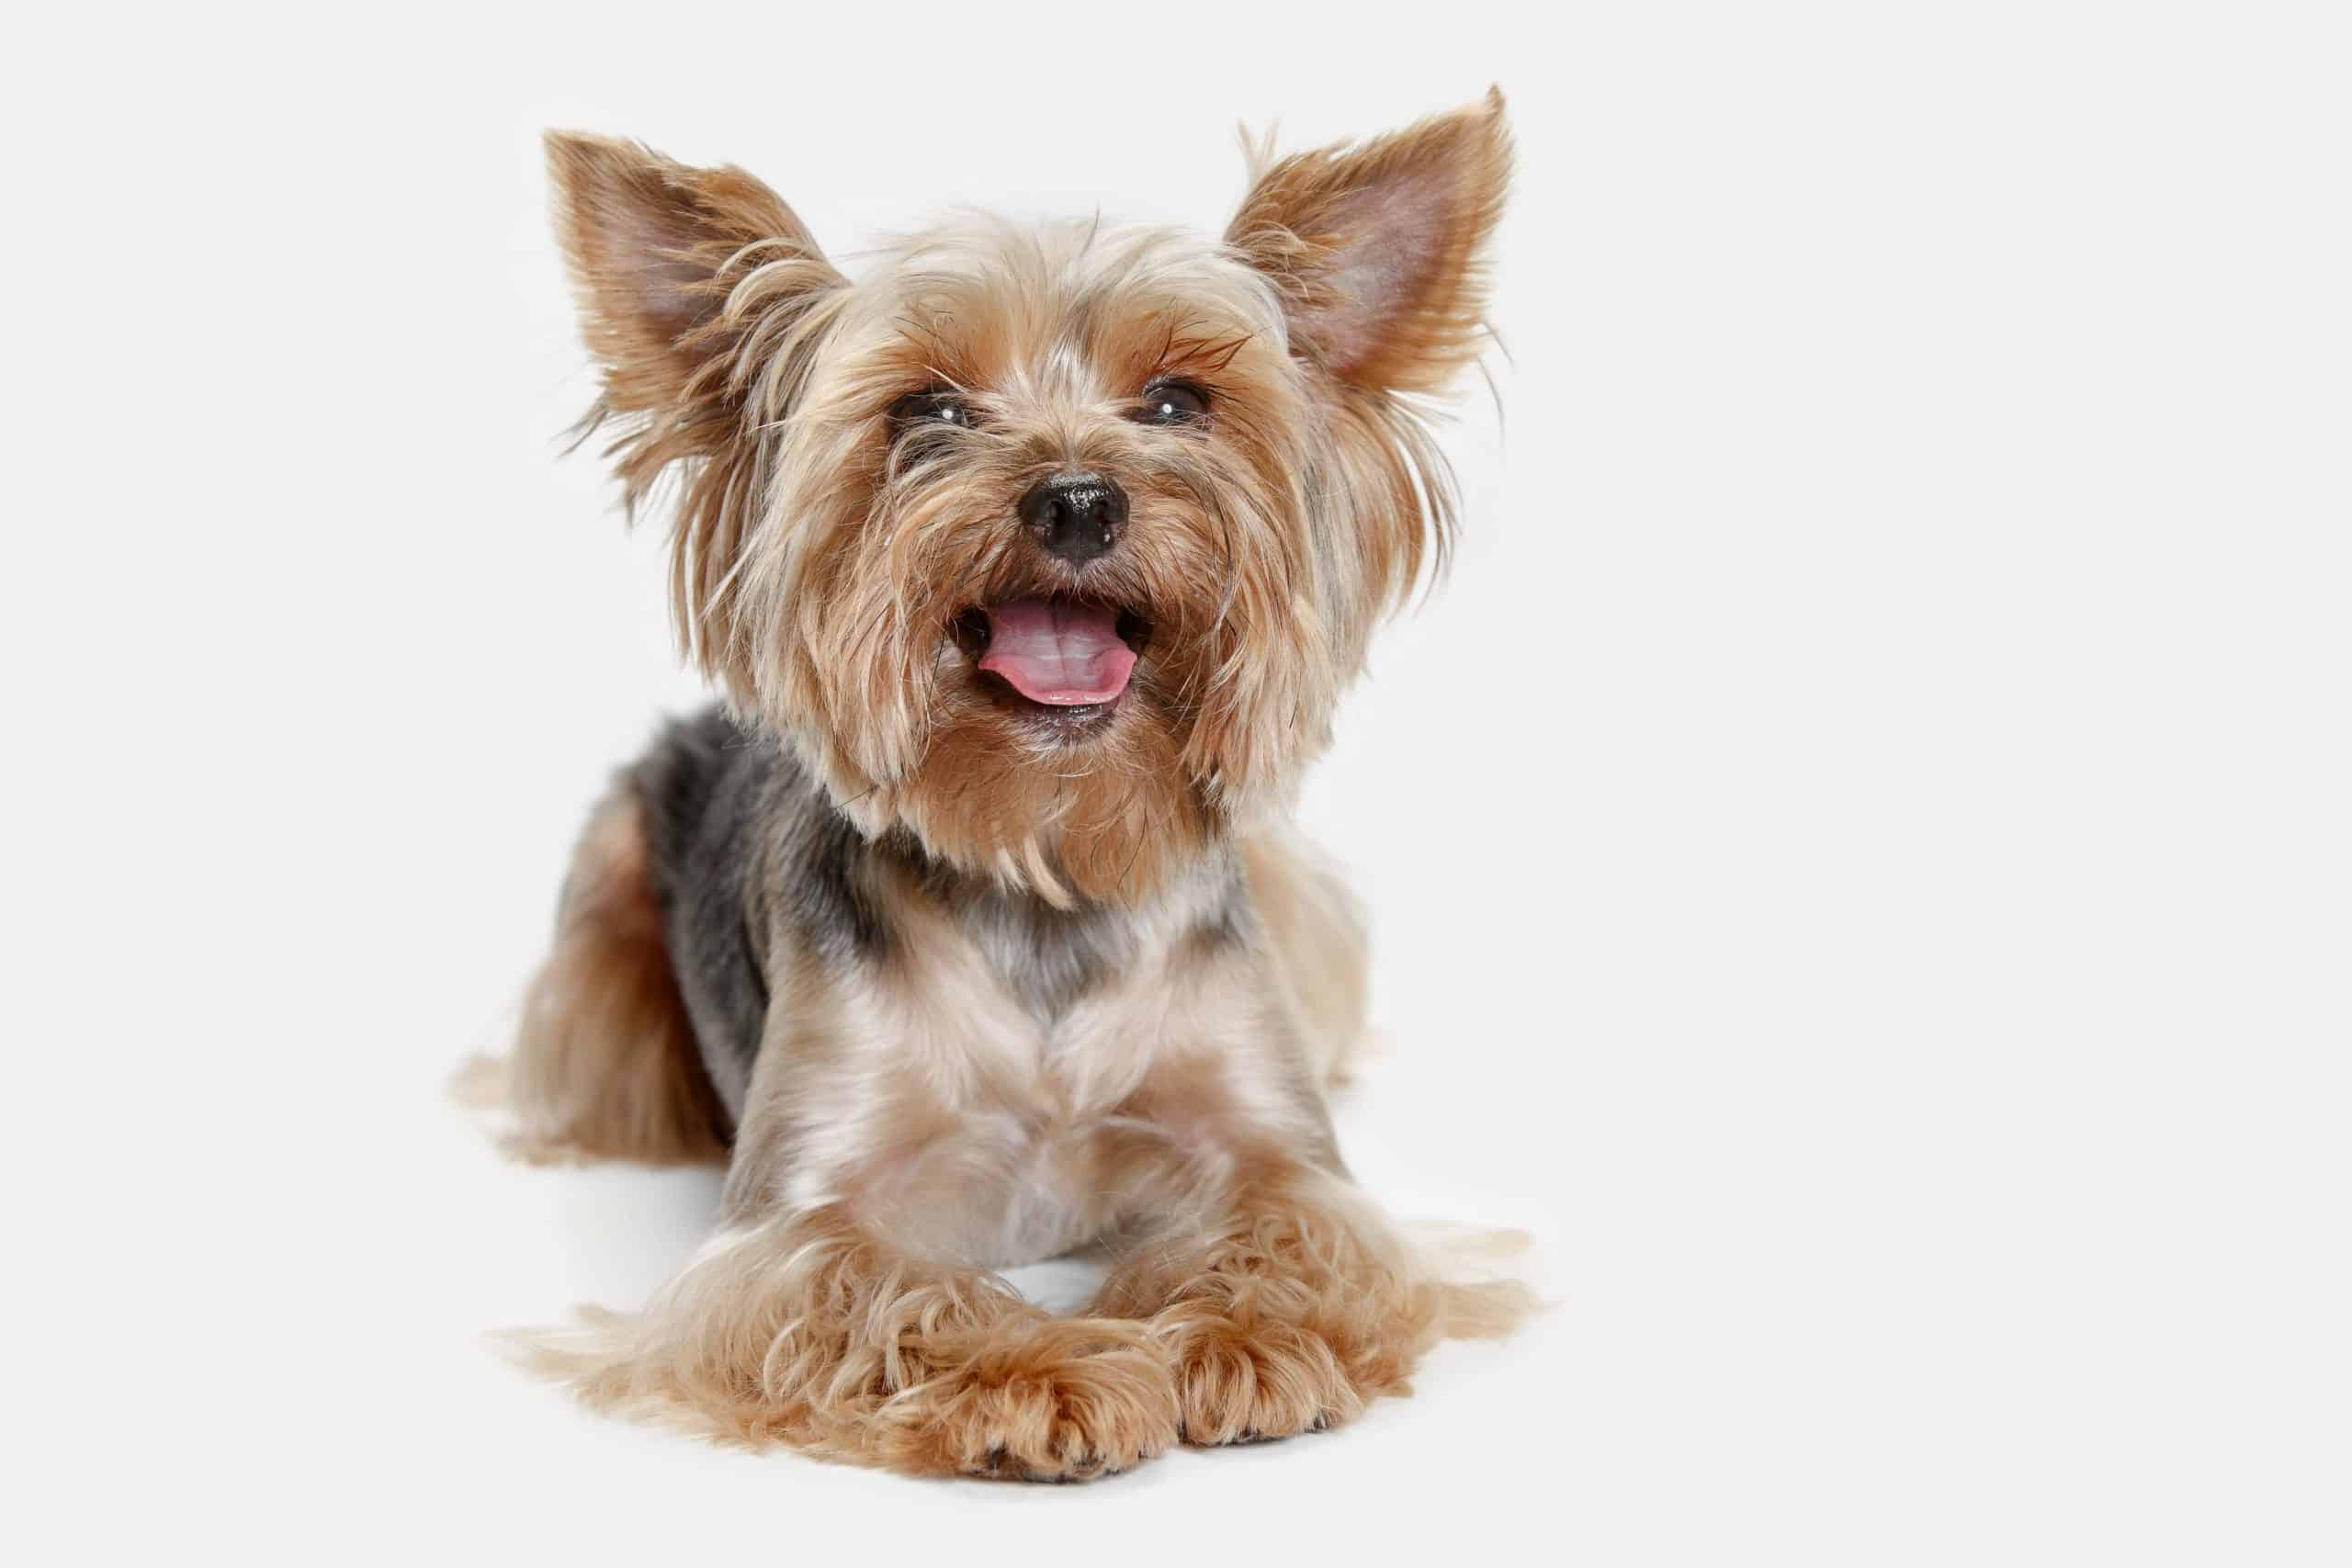 Happy Yorkshire Terrier on white background. Yorkshire terriers are beautiful, protective, loyal, compact, adaptable, and intelligent.